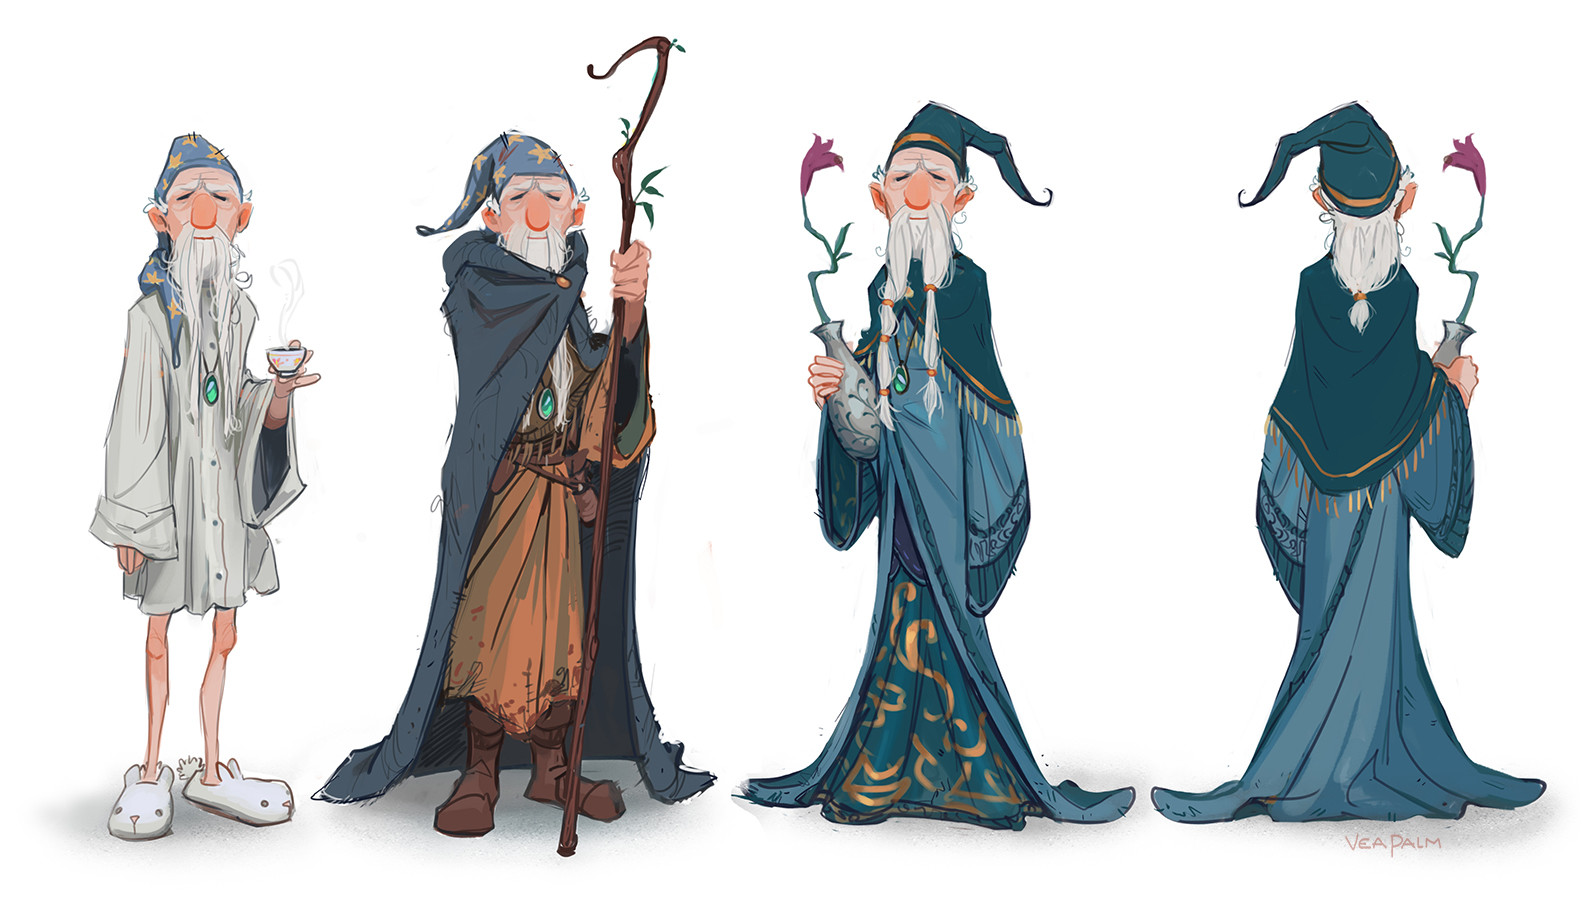 Character Design Old Man : Vanessa palmer animation character designs